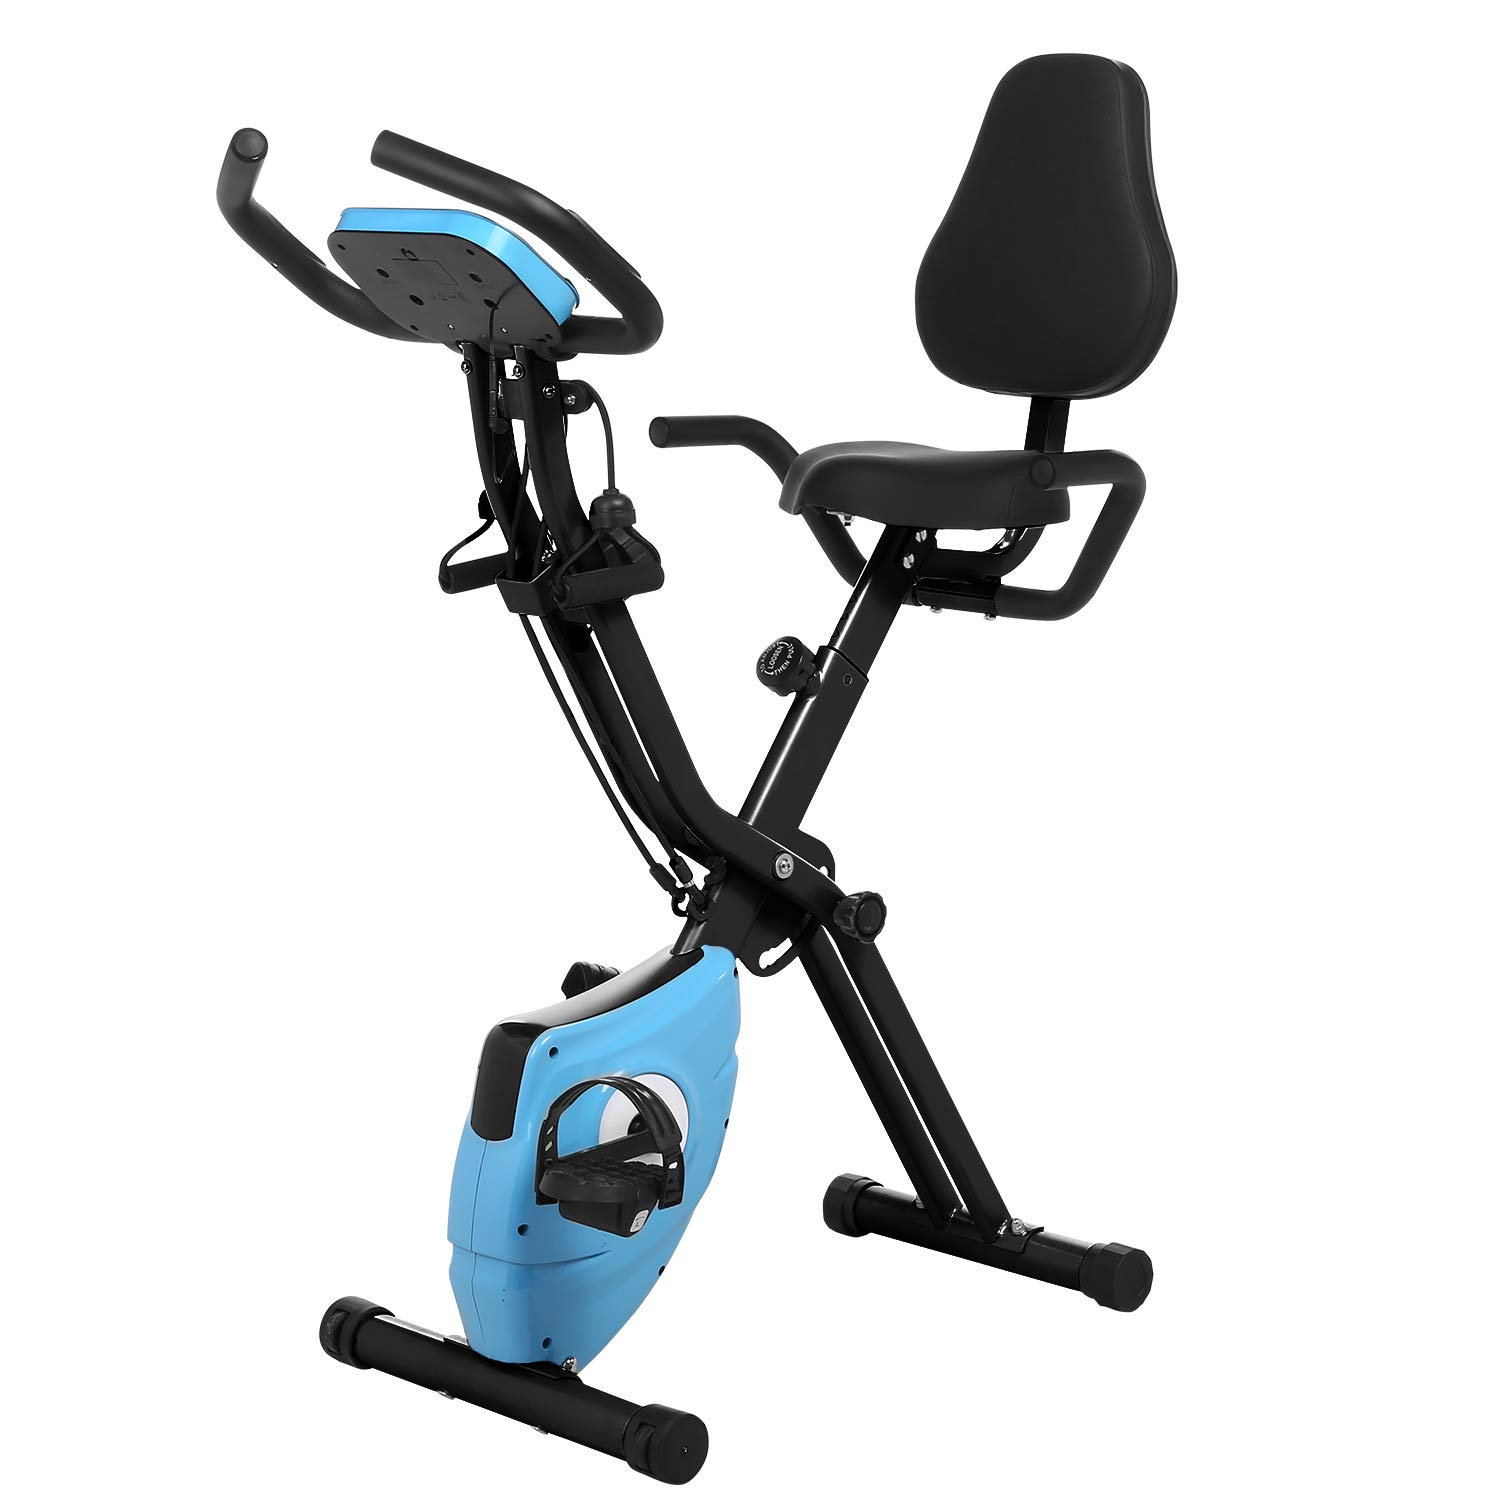 ANCHEER 2 in1 Folding Exercise Bike, Slim Cycle Indoor Stationary Bike with 10-Level Adjustable Magnetic Resistance and Arm Training Bands (Blue)